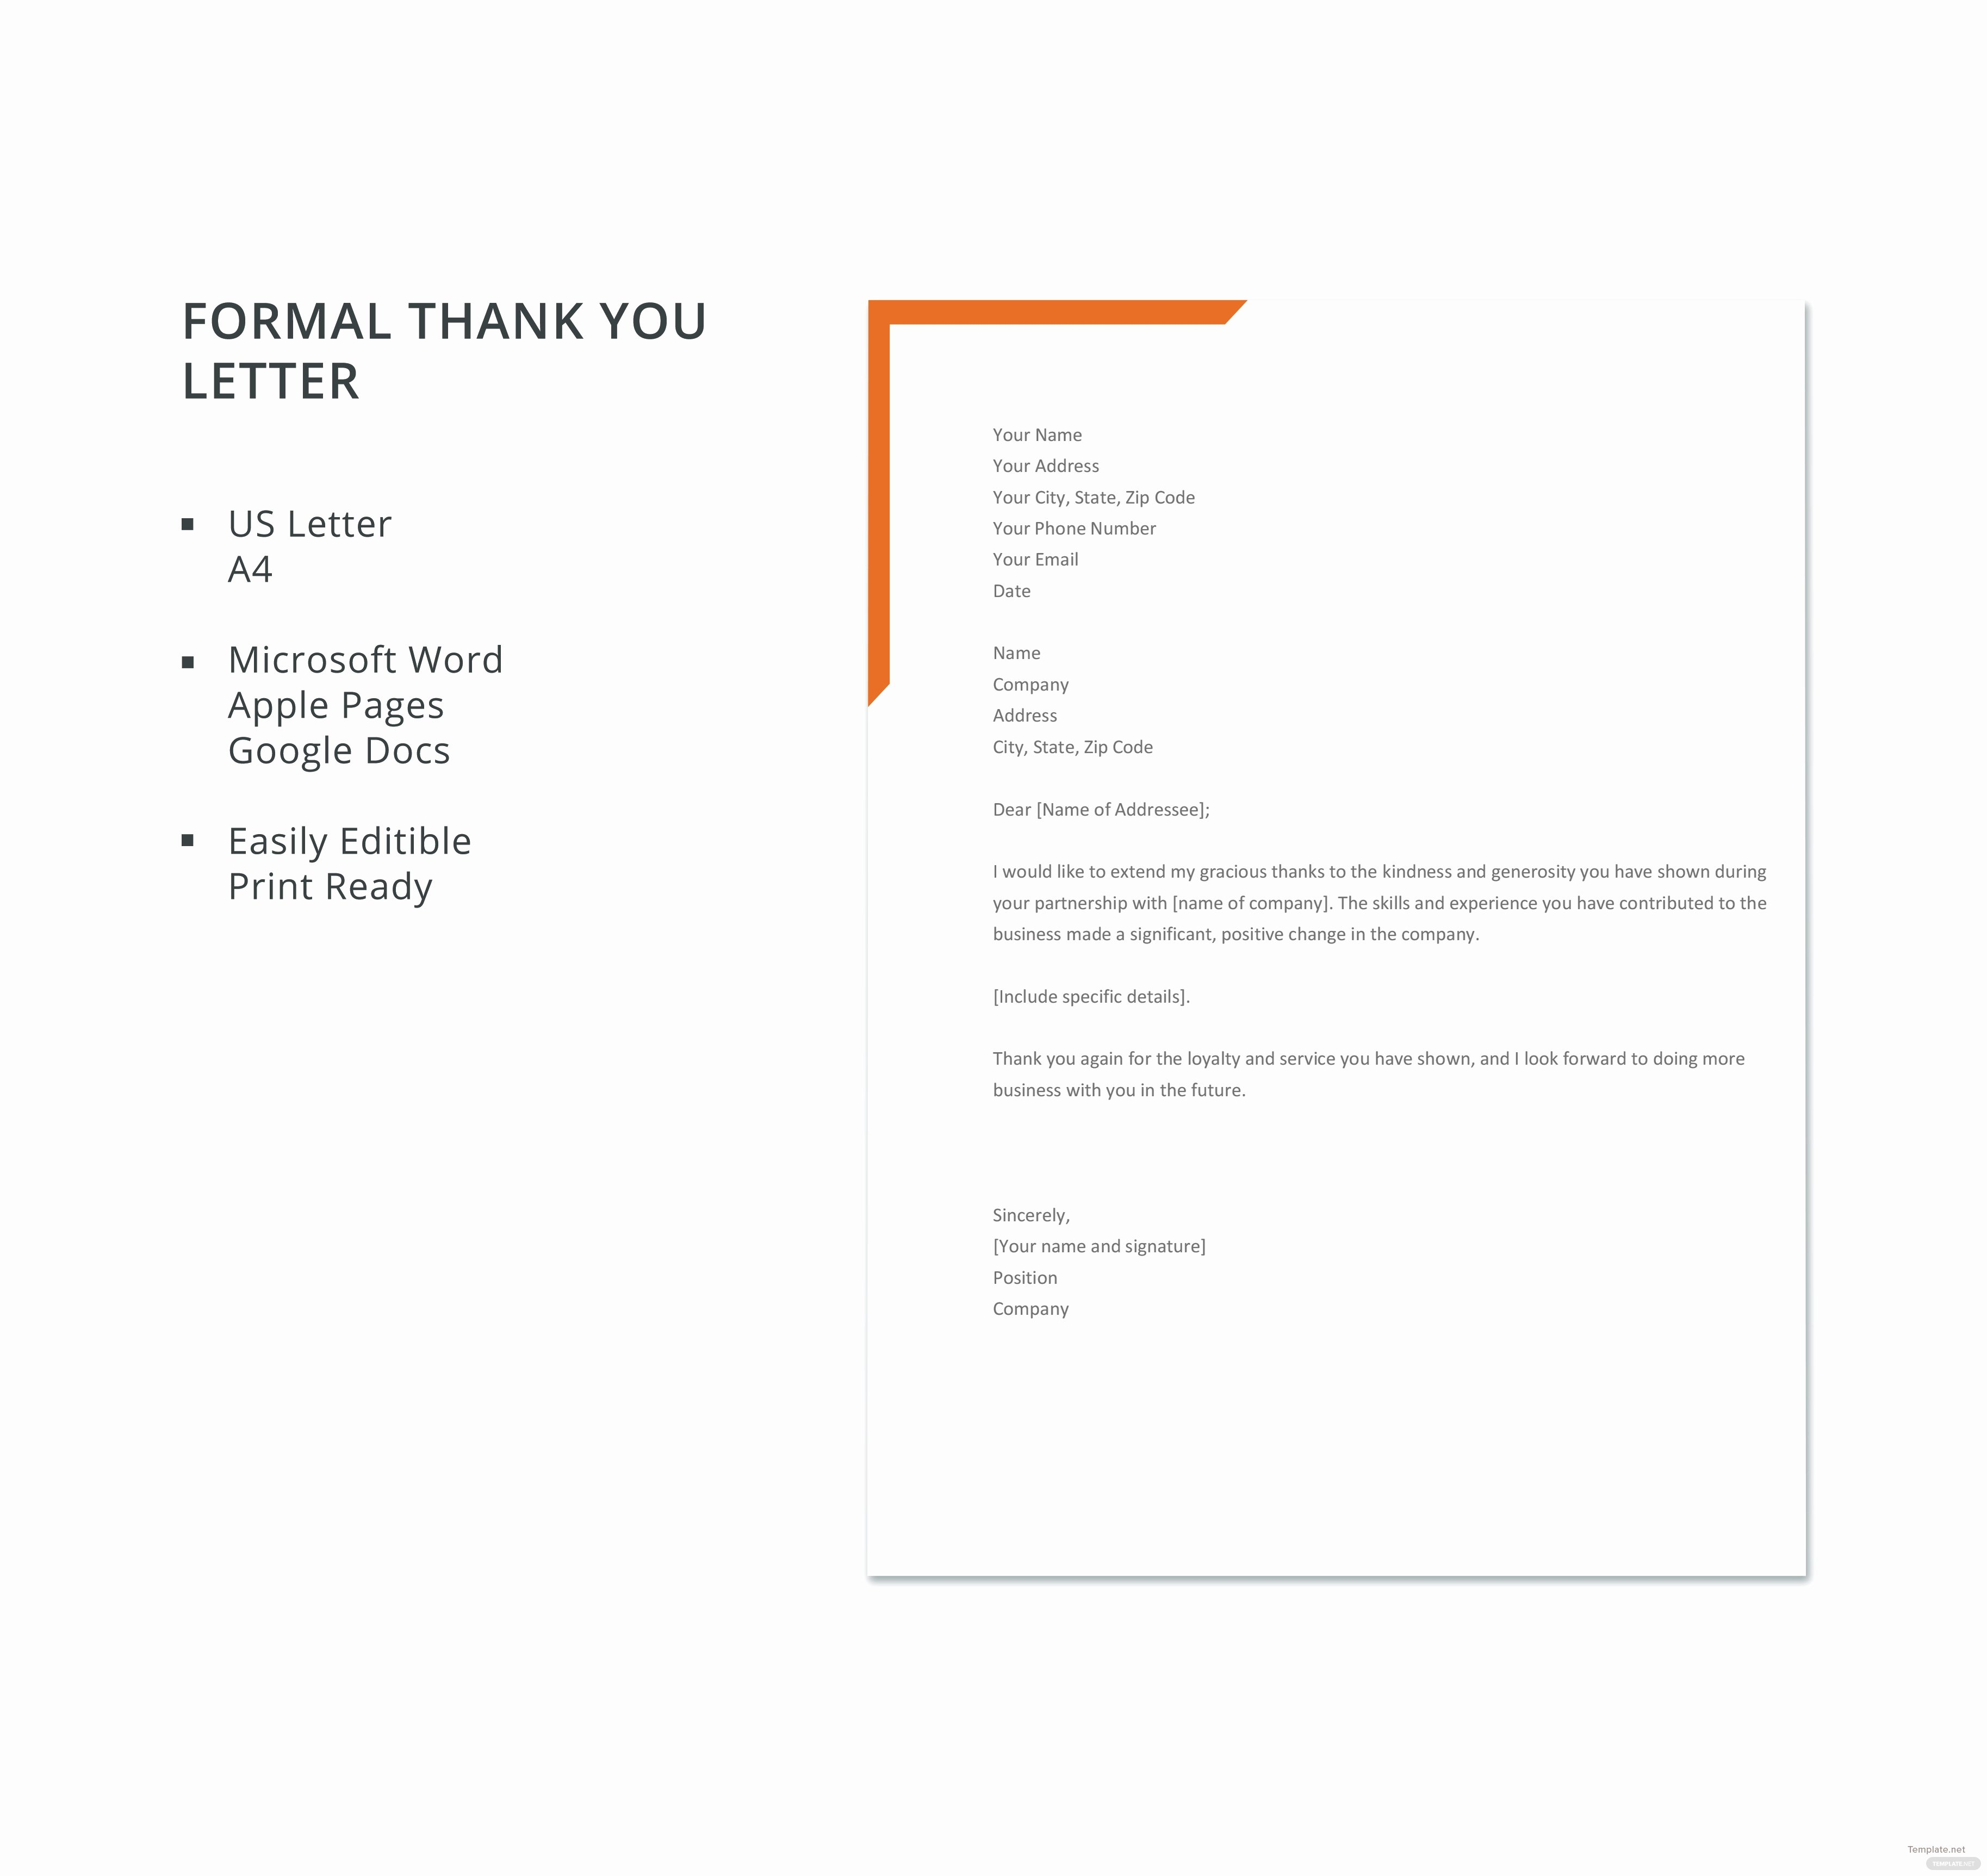 Free Thank You Letters Awesome Free formal Thank You Letter Template In Microsoft Word